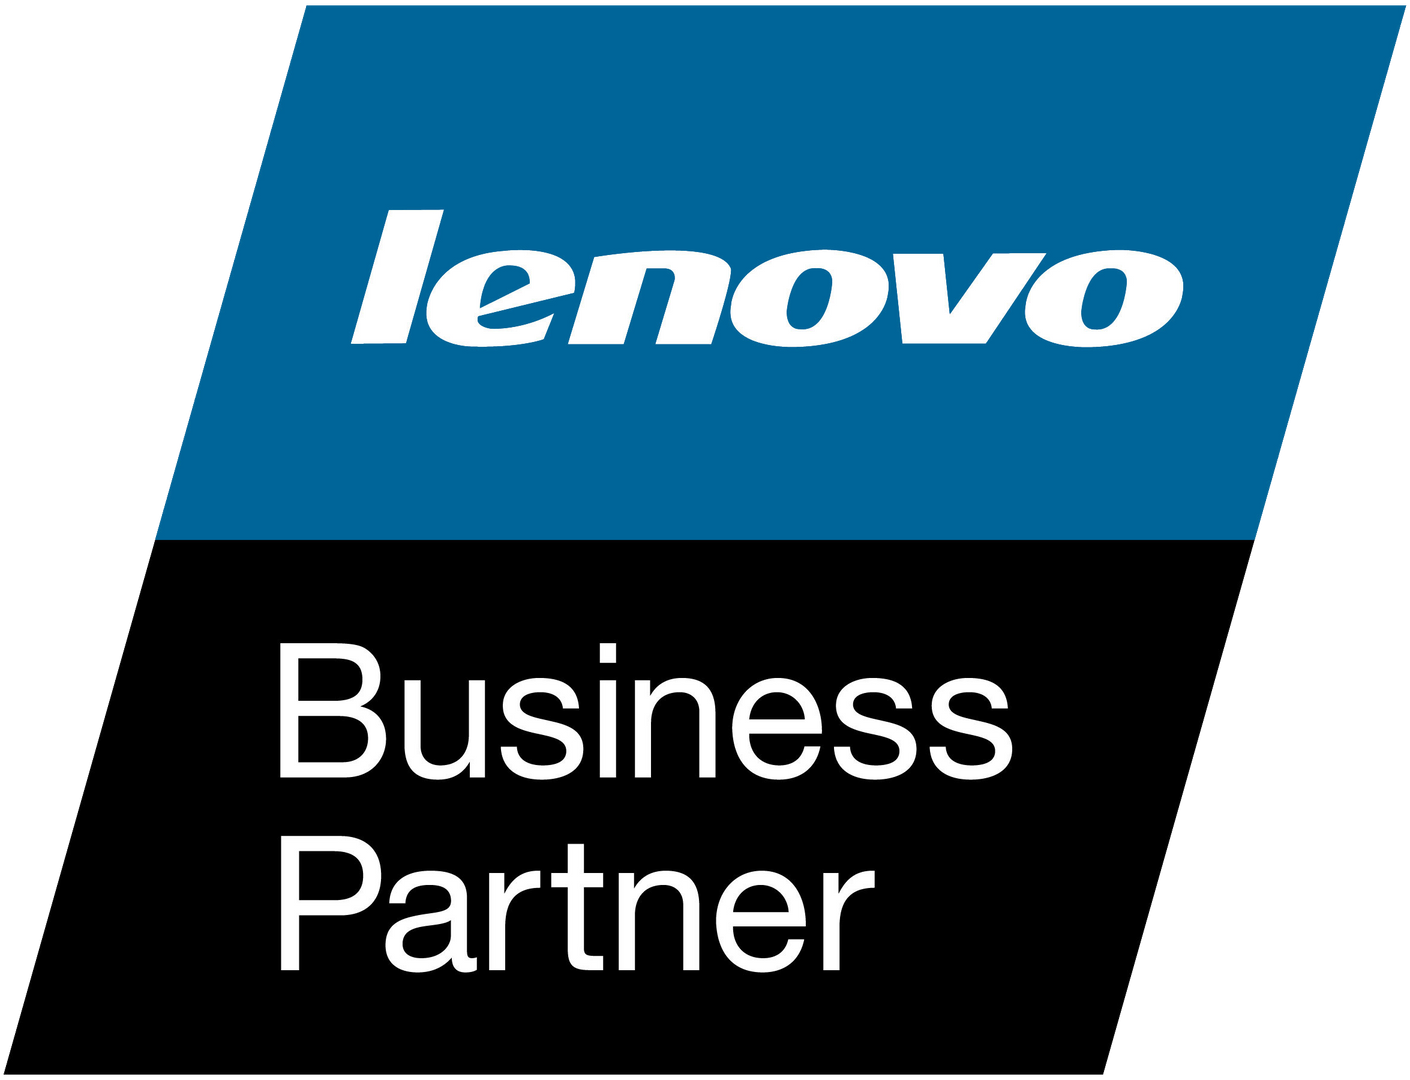 Lenovo-Business-Partner-logo.png